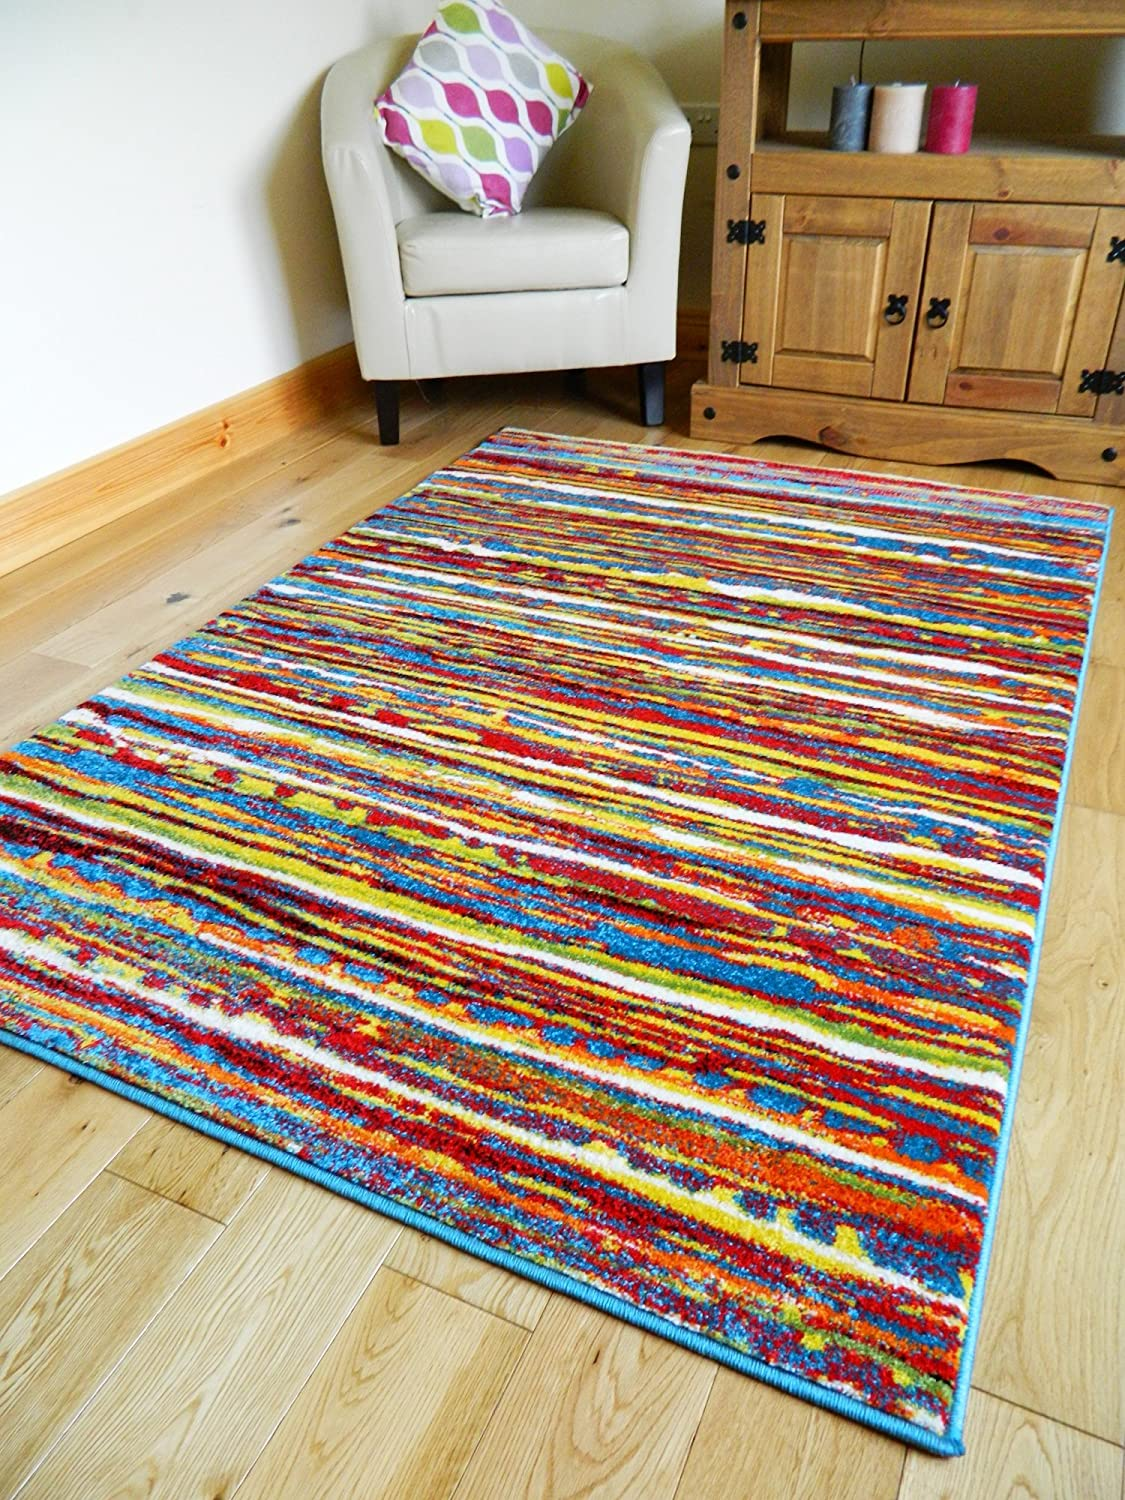 MULTI COLOURED STRIPE FUNKY BRIGHT MODERN THICK SOFT HEAVY QUALITY AREA RUG  SMALL MEDIUM XX LARGE RUG NEW MODERN SOFT NAVY YELLOW BLUE RED CARPET NON  SHED. MULTI COLOURED STRIPE FUNKY BRIGHT MODERN THICK SOFT HEAVY QUALITY